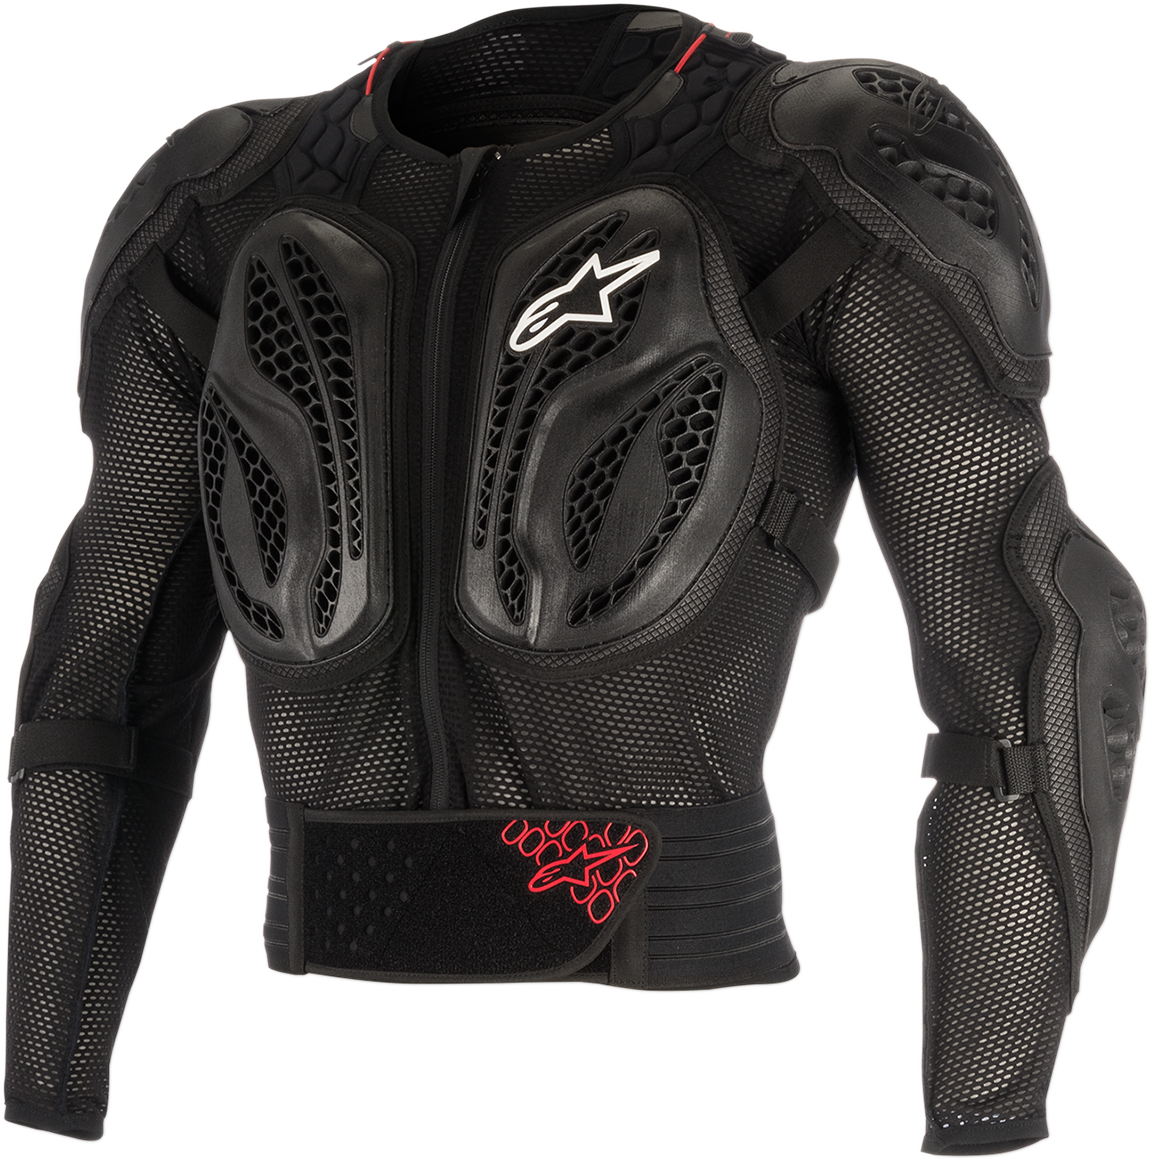 Mens Alpinestars Black Bionic Action Off road Riding Dirt Bike Racing Jacket